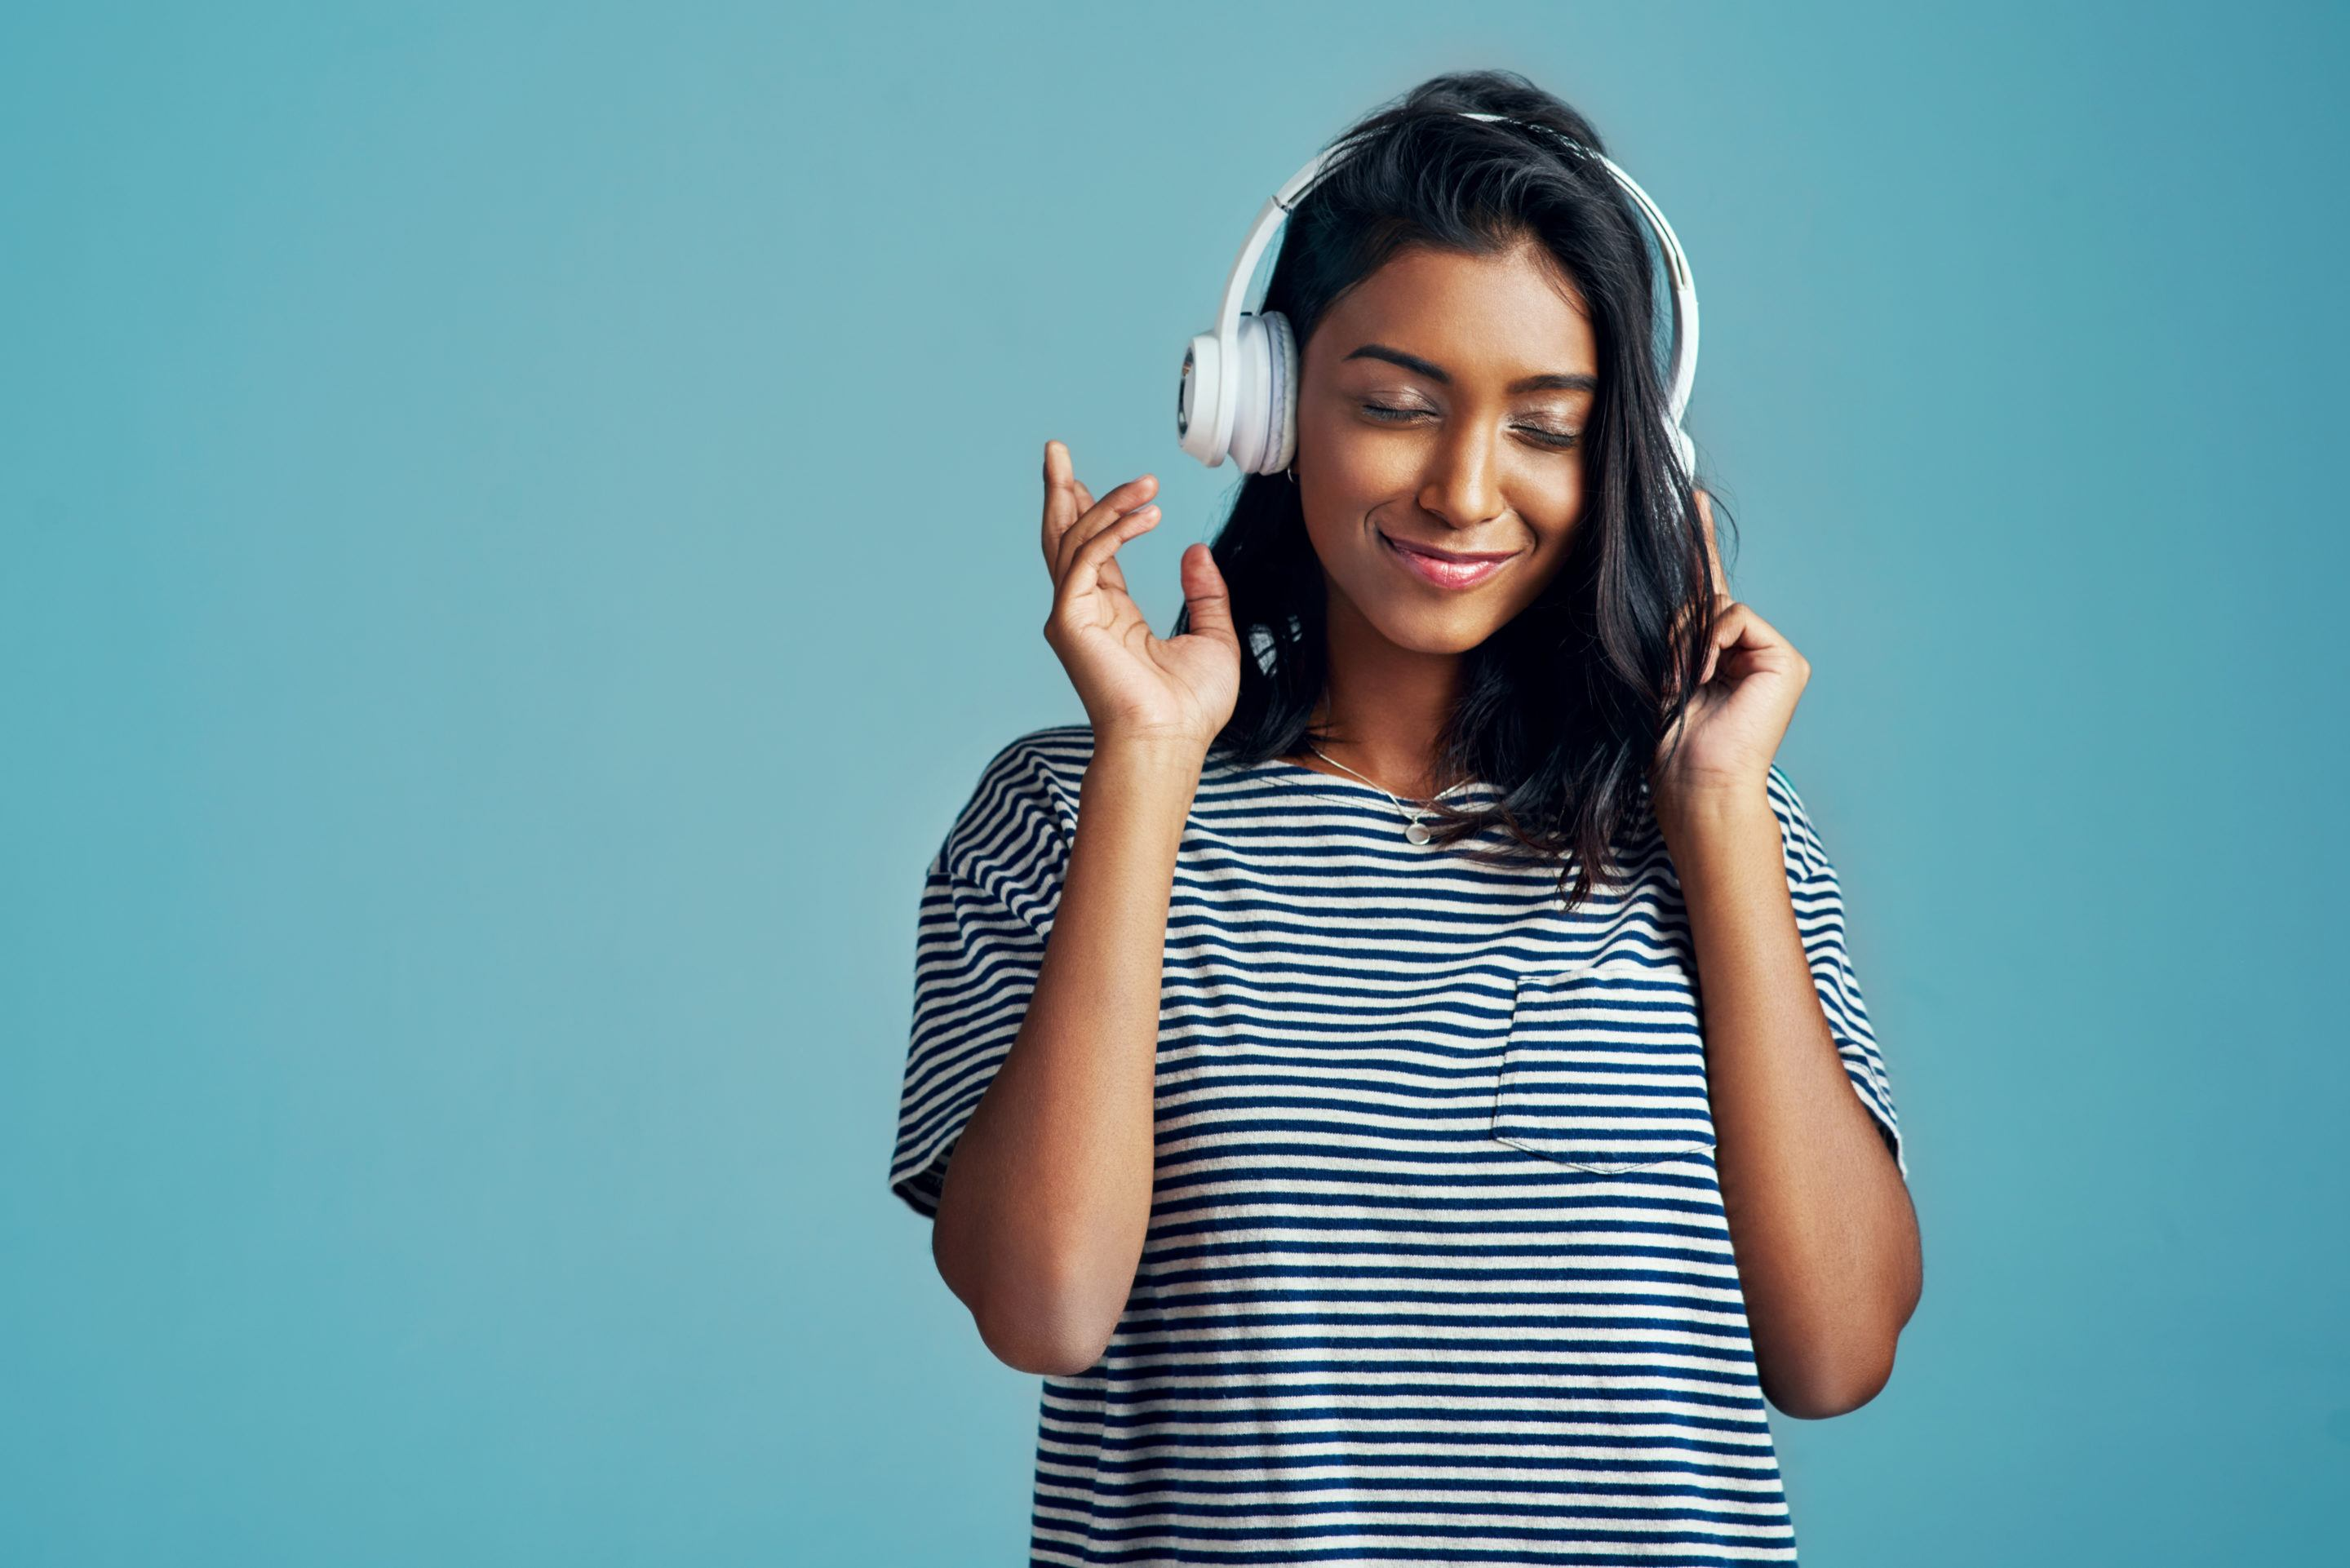 The biggest mistake people make when buying headphones, according to an audiologist